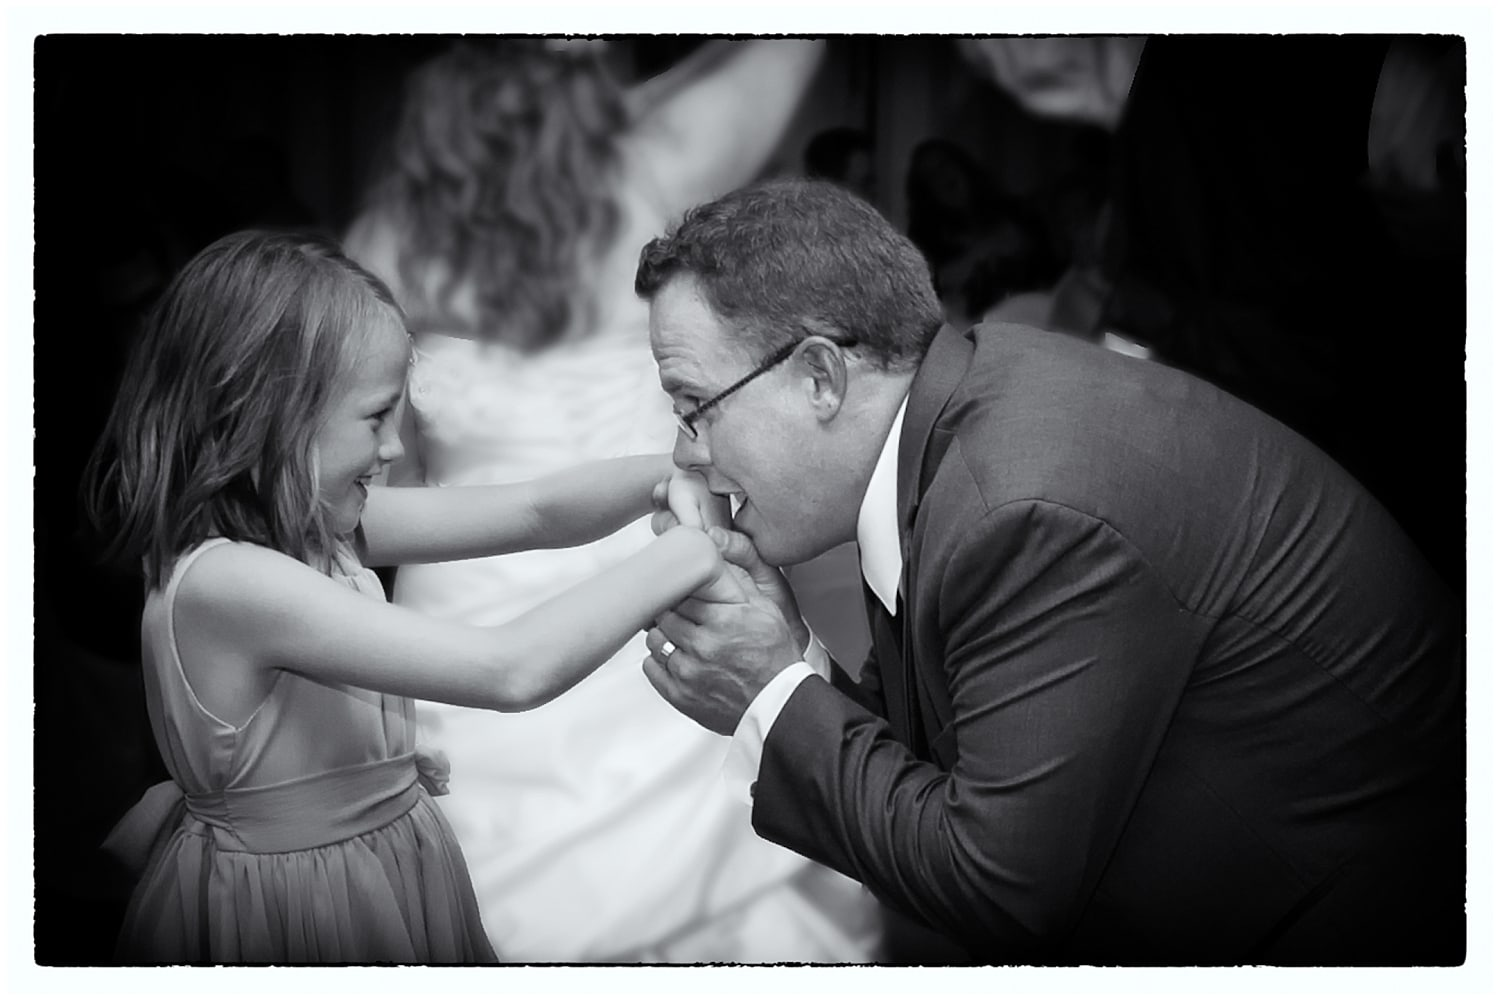 The groom dances with his daughter during his wedding reception at the Ashburn Golf Club in Halifax, NS.